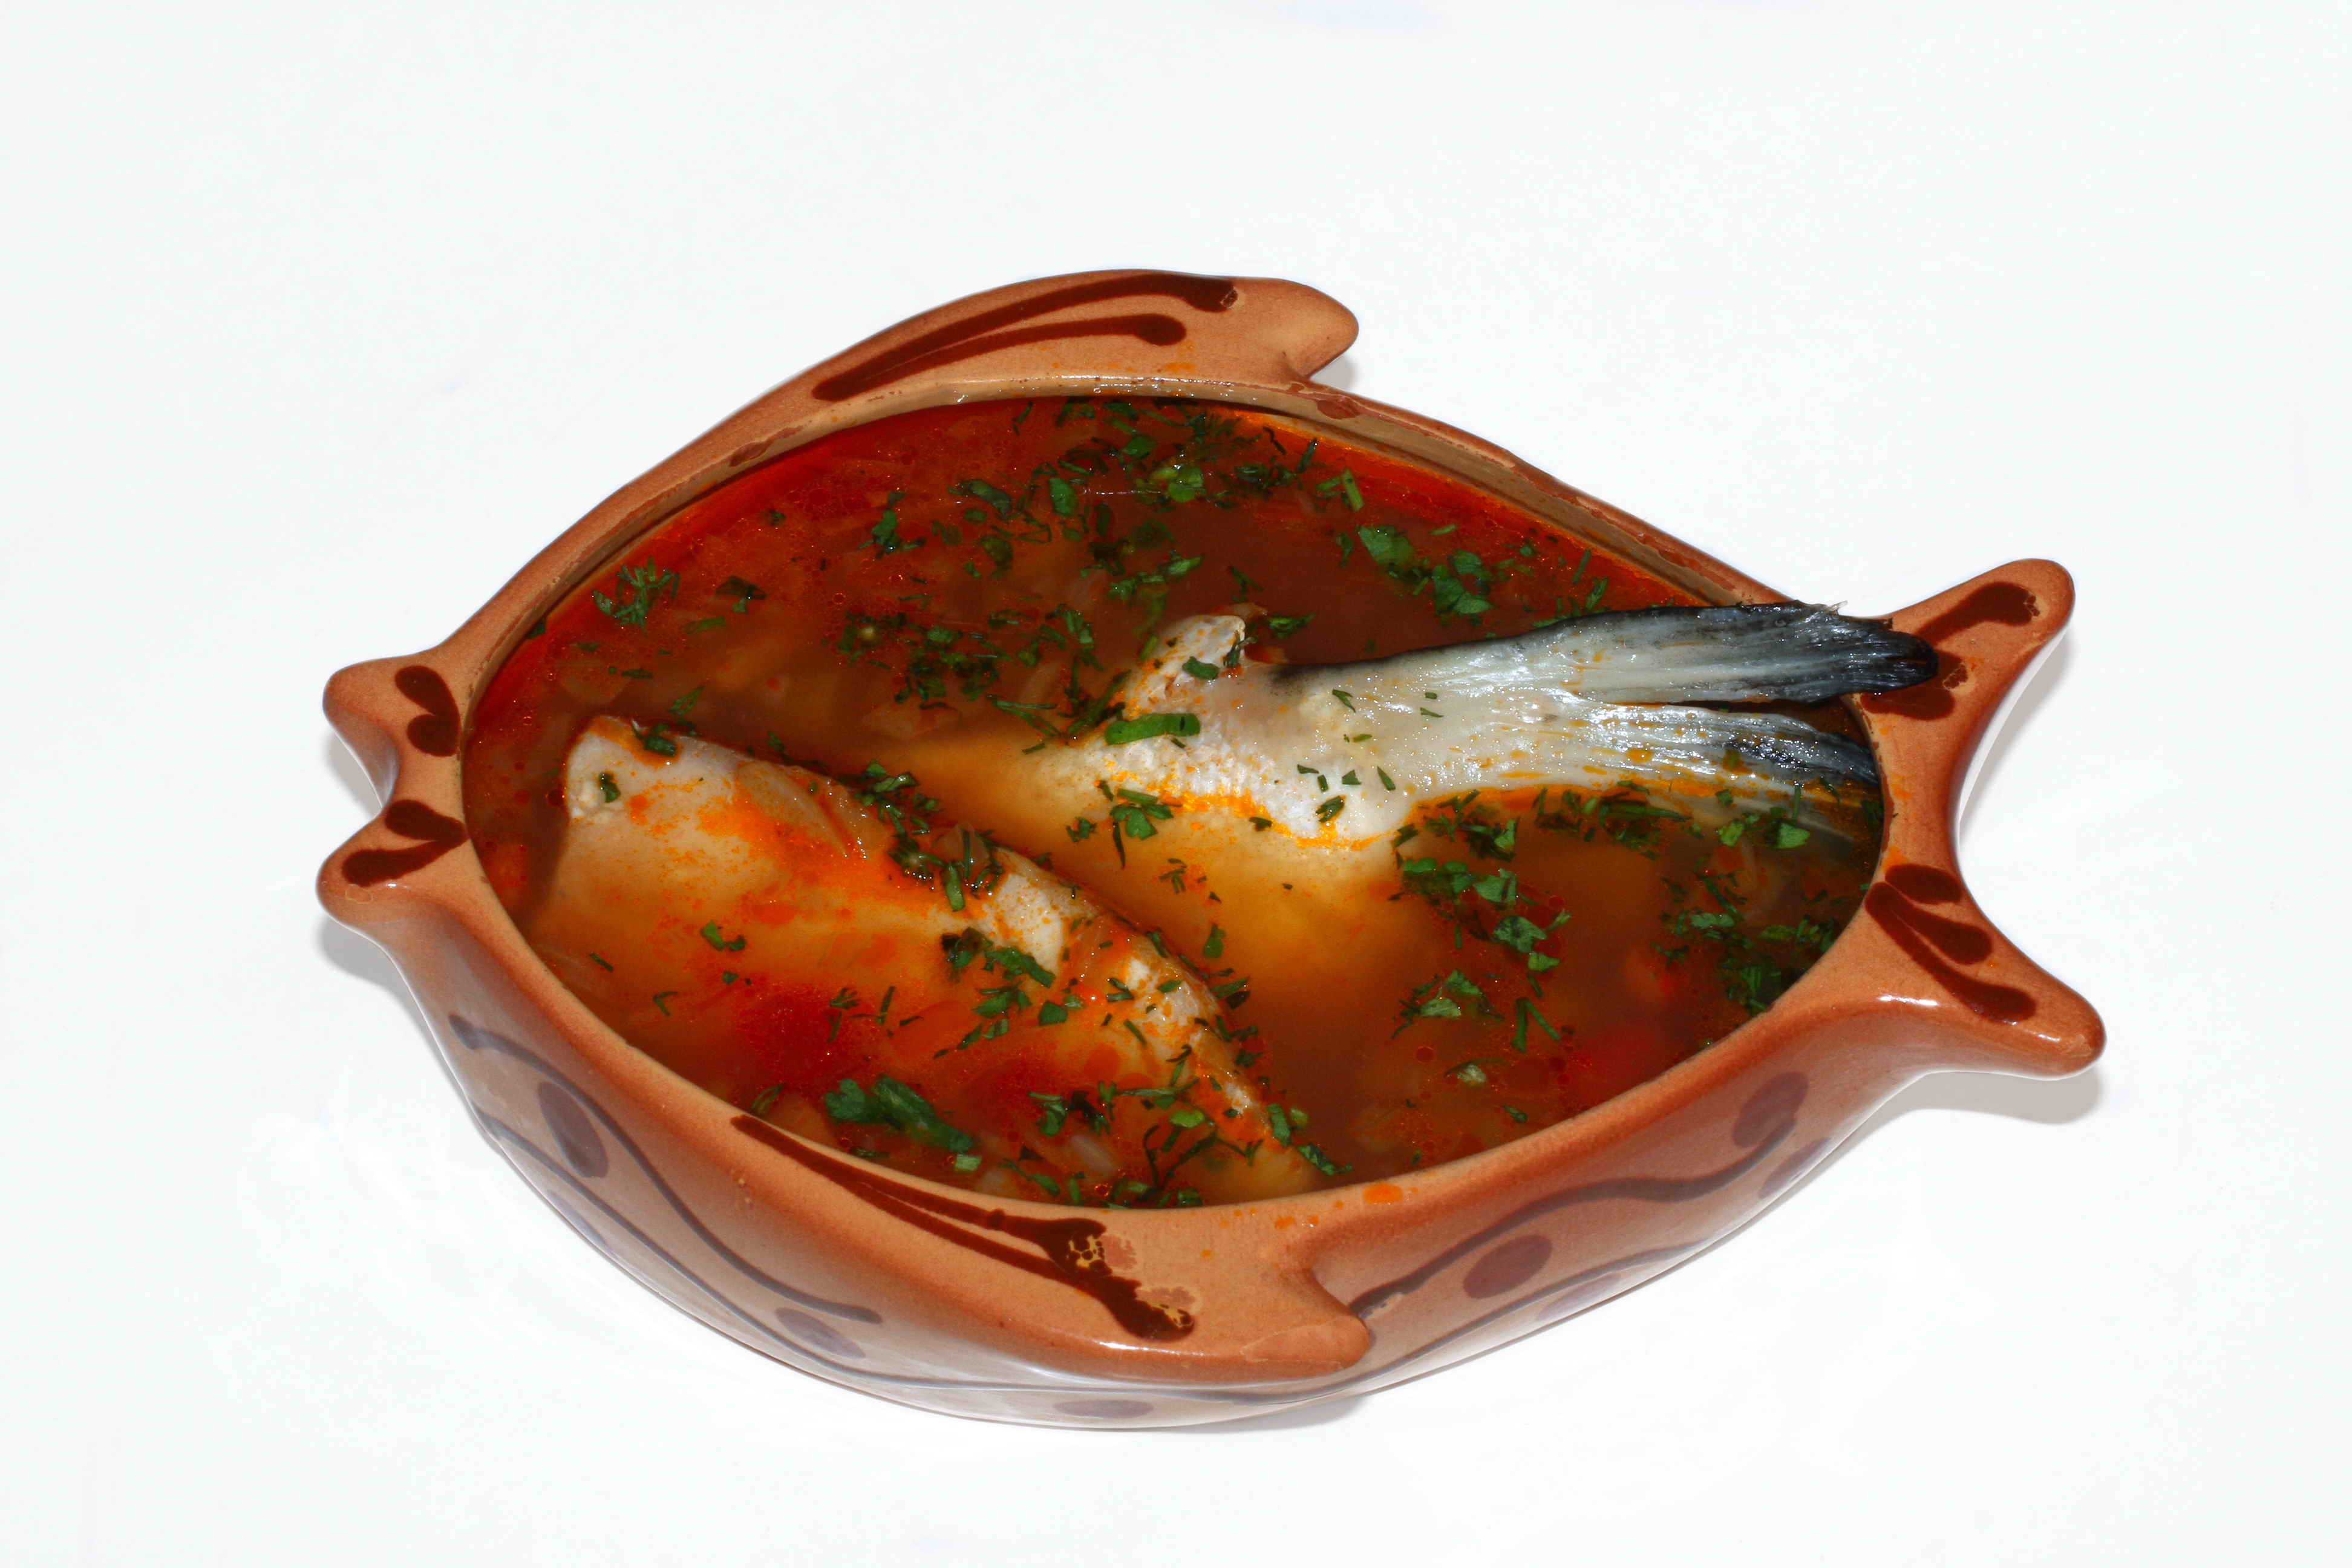 Kinglike fish soup with chicken bouillon